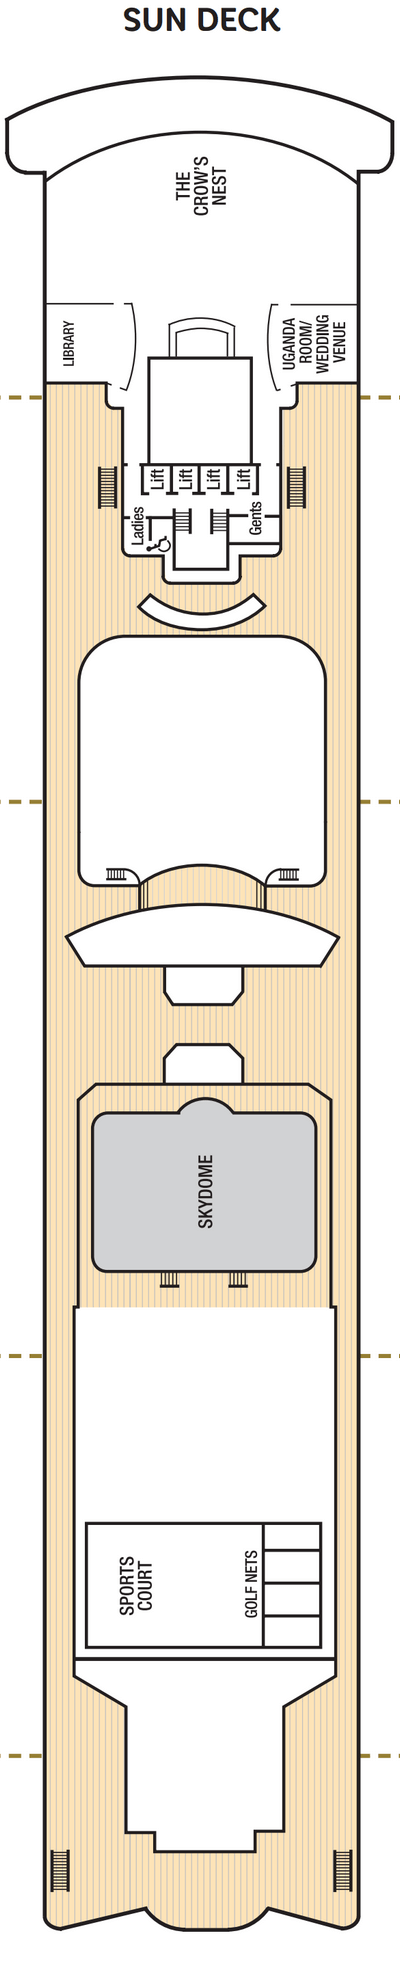 Aurora Sun Deck layout